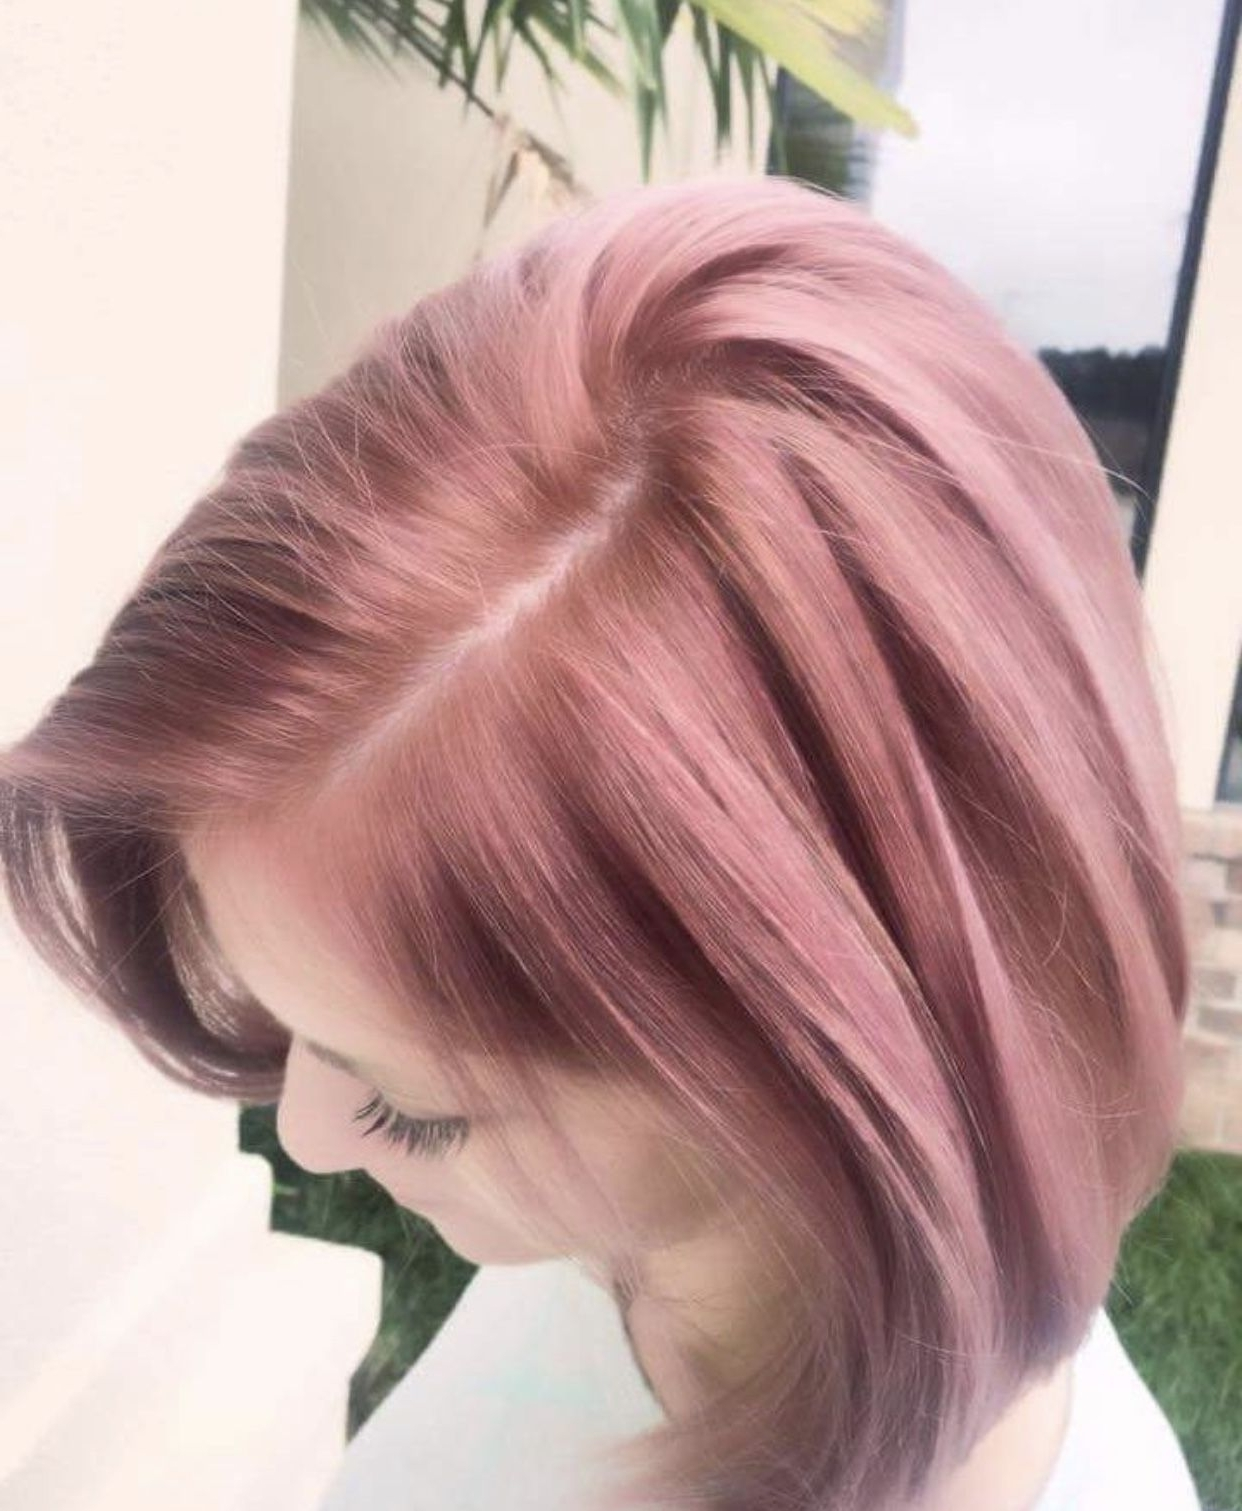 Rosewoodaveda Artist Amanda Smith At Spa Concepts In Shreveport Throughout Most Current Rosewood Blonde Waves Hairstyles (View 18 of 20)